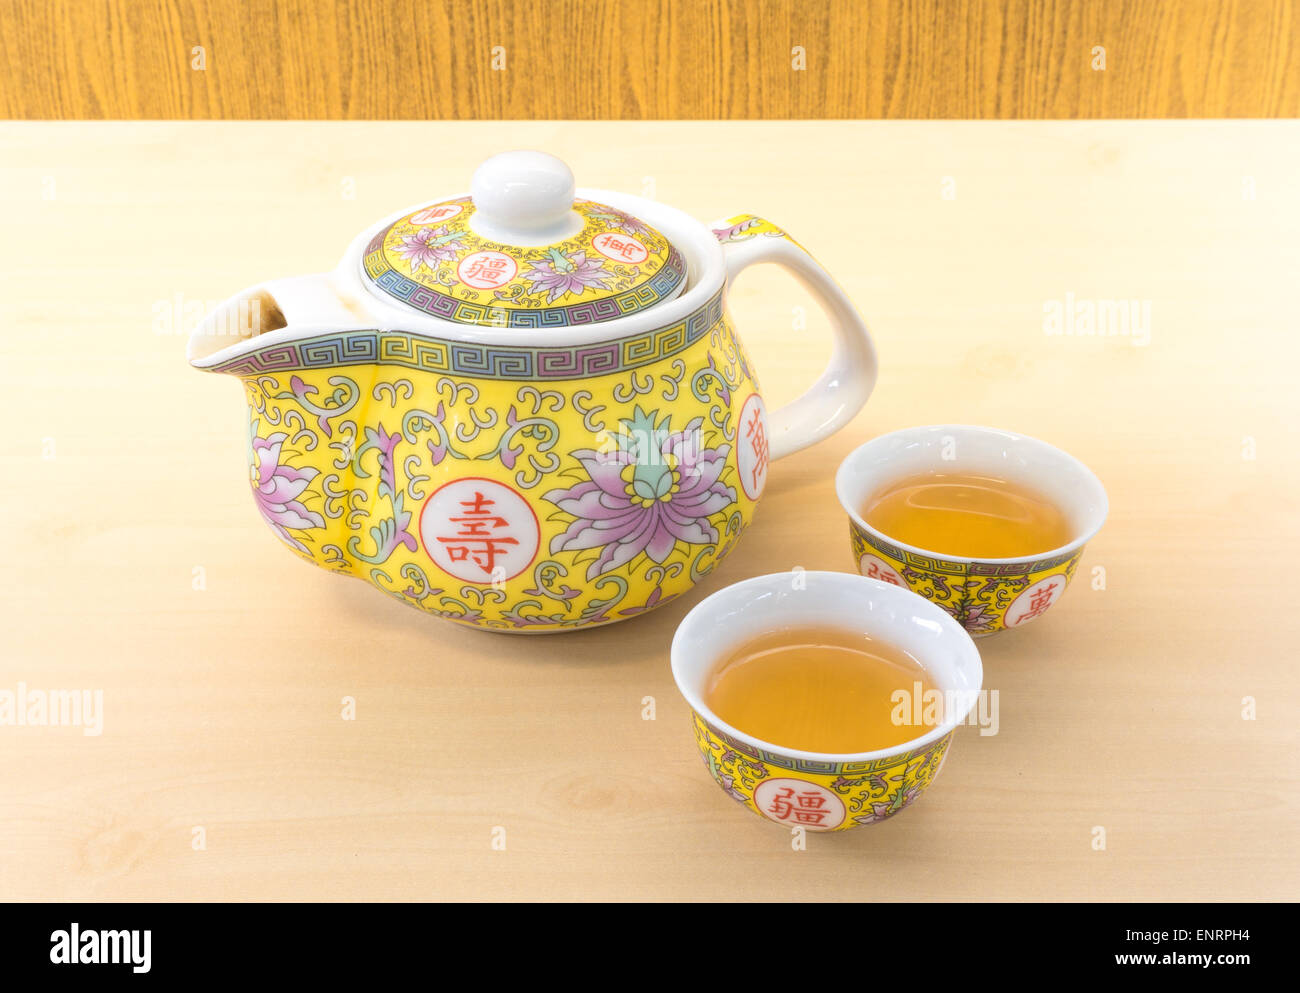 Chinese Tea Pot Set with Two Small Tea Cup - Stock Image